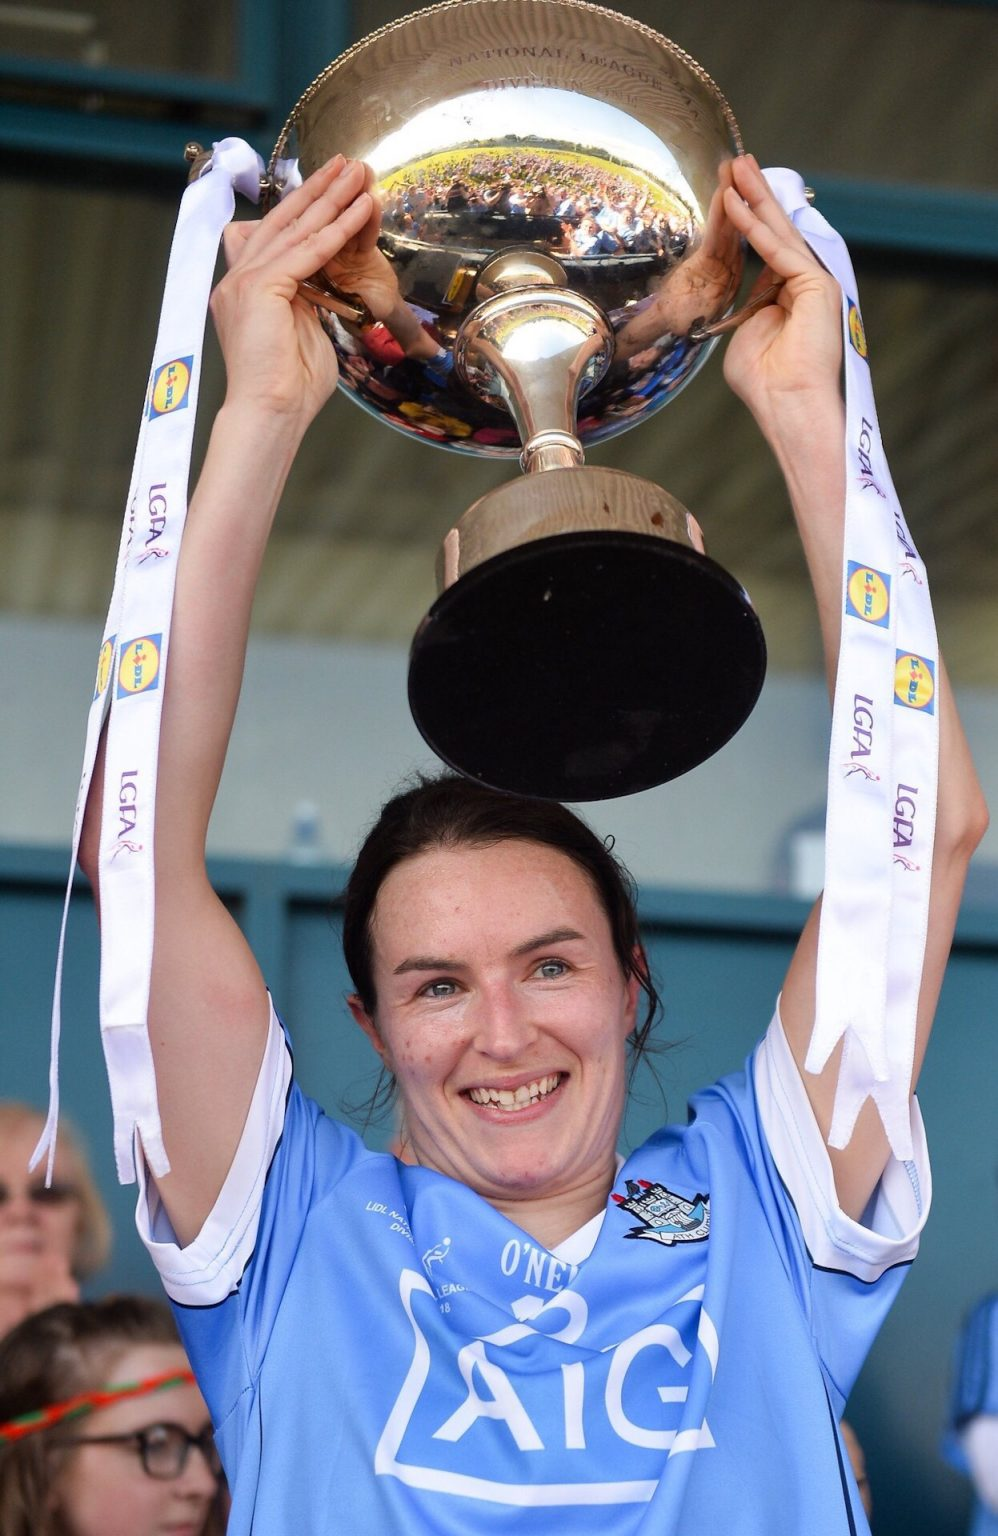 Dublin Captain Sinead Aherne In a sky blue jersey raises the Lidl NFL Division 1 Trophy above her head, dublin start defence against donegal as Lidl NFL Fixtures announced for 2019